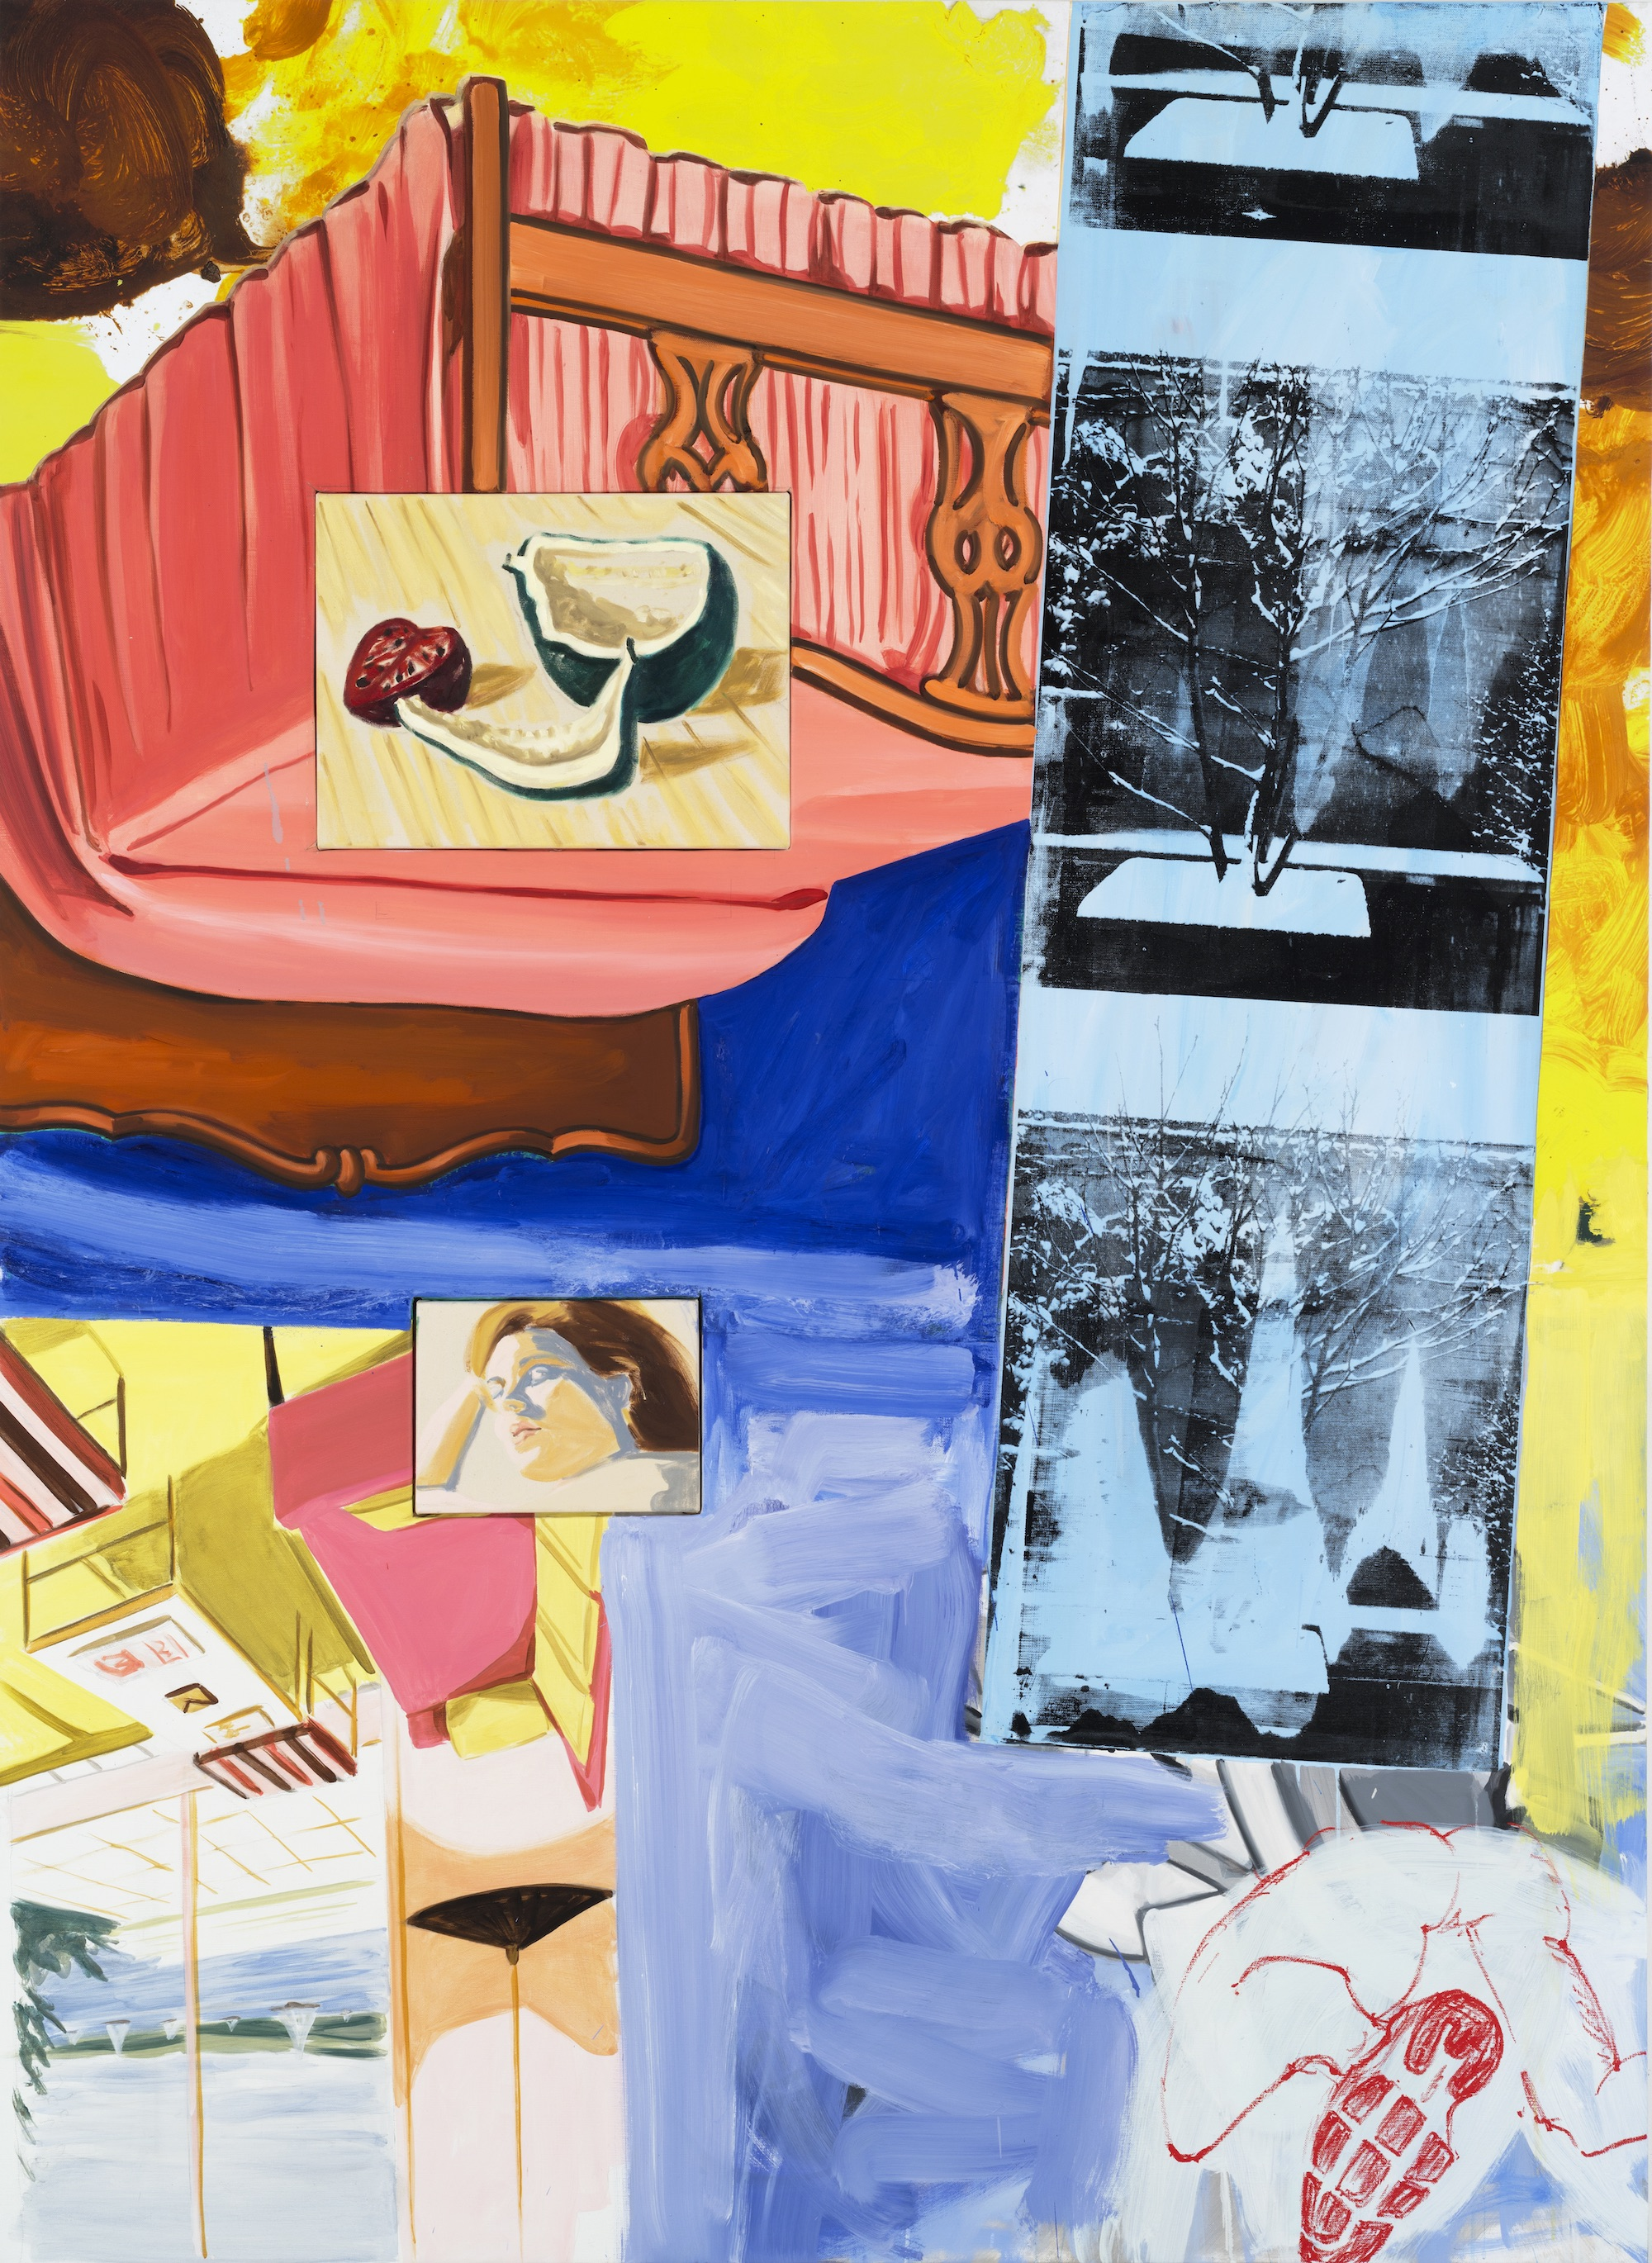 David Salle, Falling Into Bed, 2014.